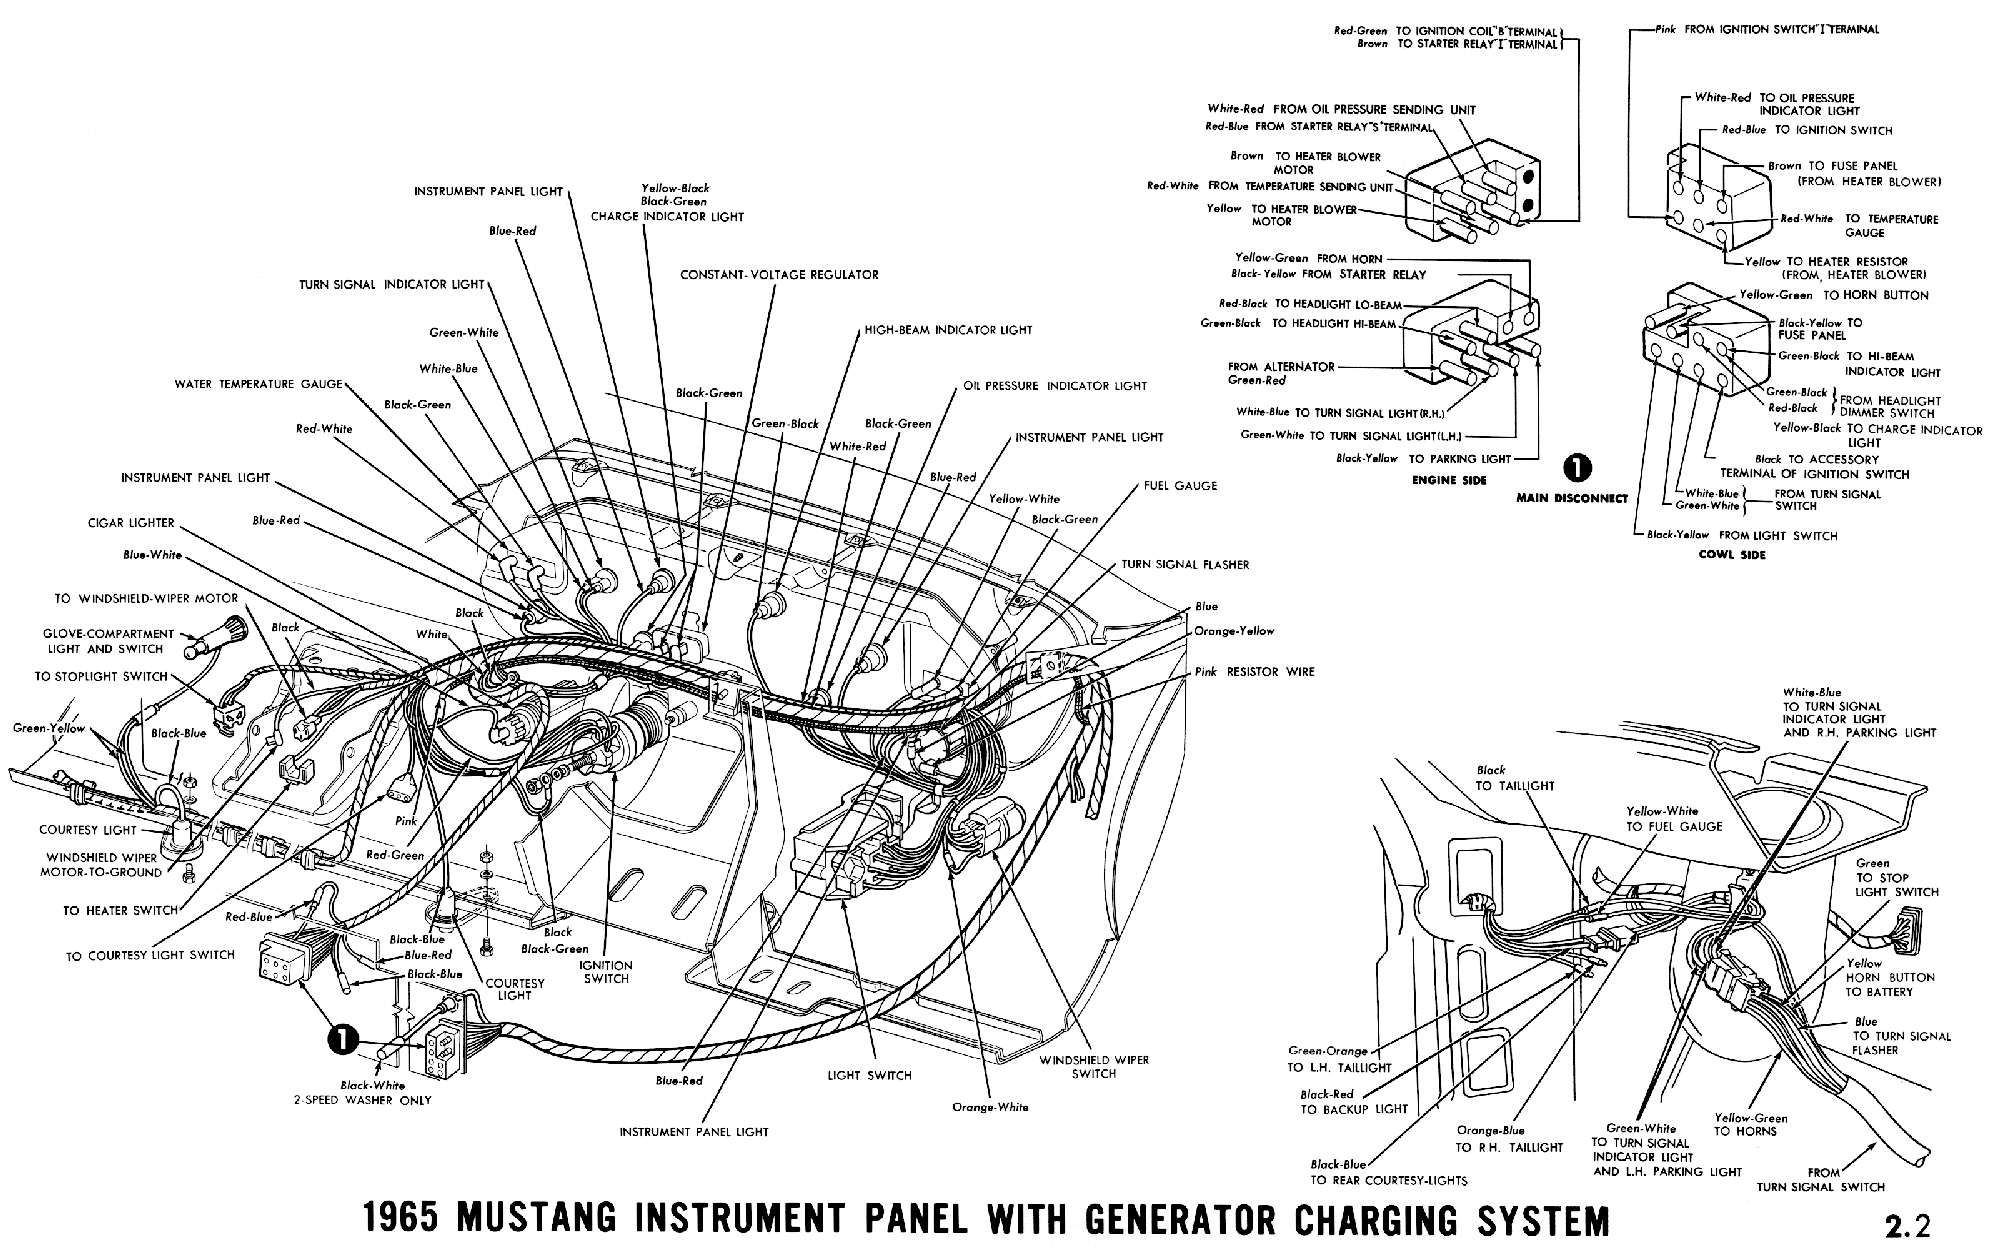 1965 Mustang Wiring Diagrams | Automotive Repair | Mustang